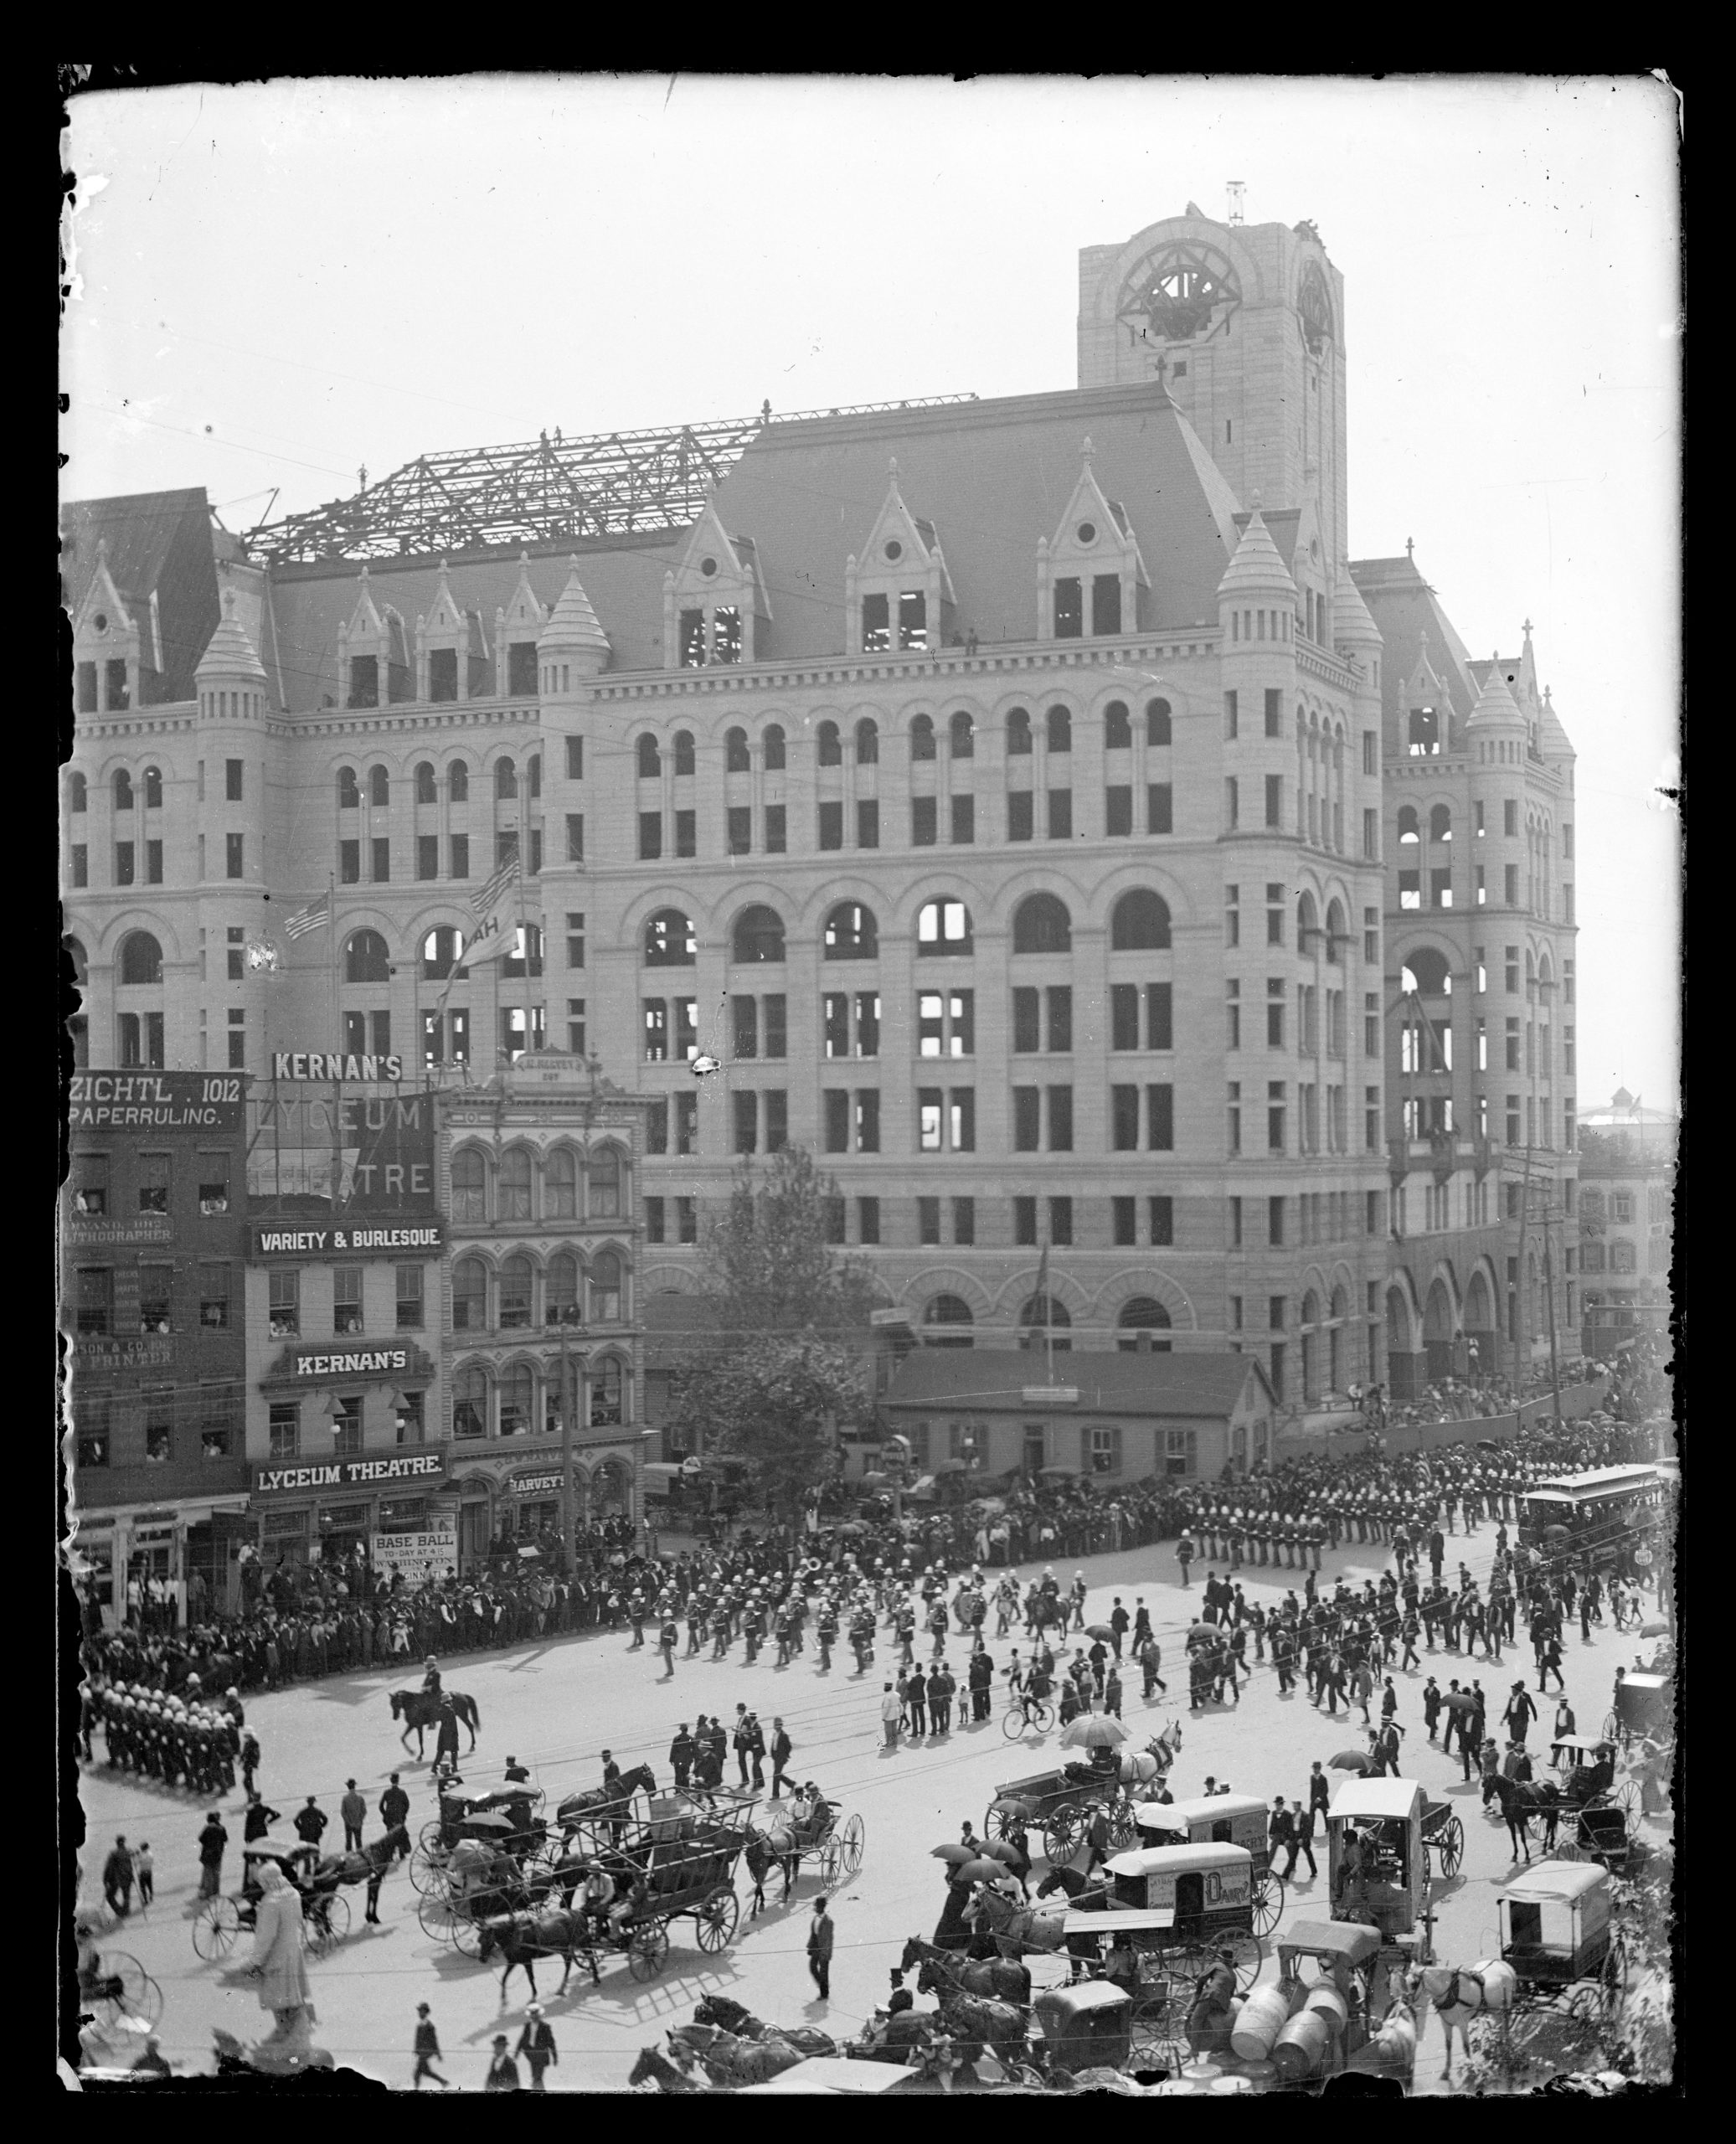 Labor Day parade on Pennsylvania Avenue in the vicinity of Kernan's Lyceum Theater and unfinished Post Office building in Washington D.C., 1894. Library of Congress